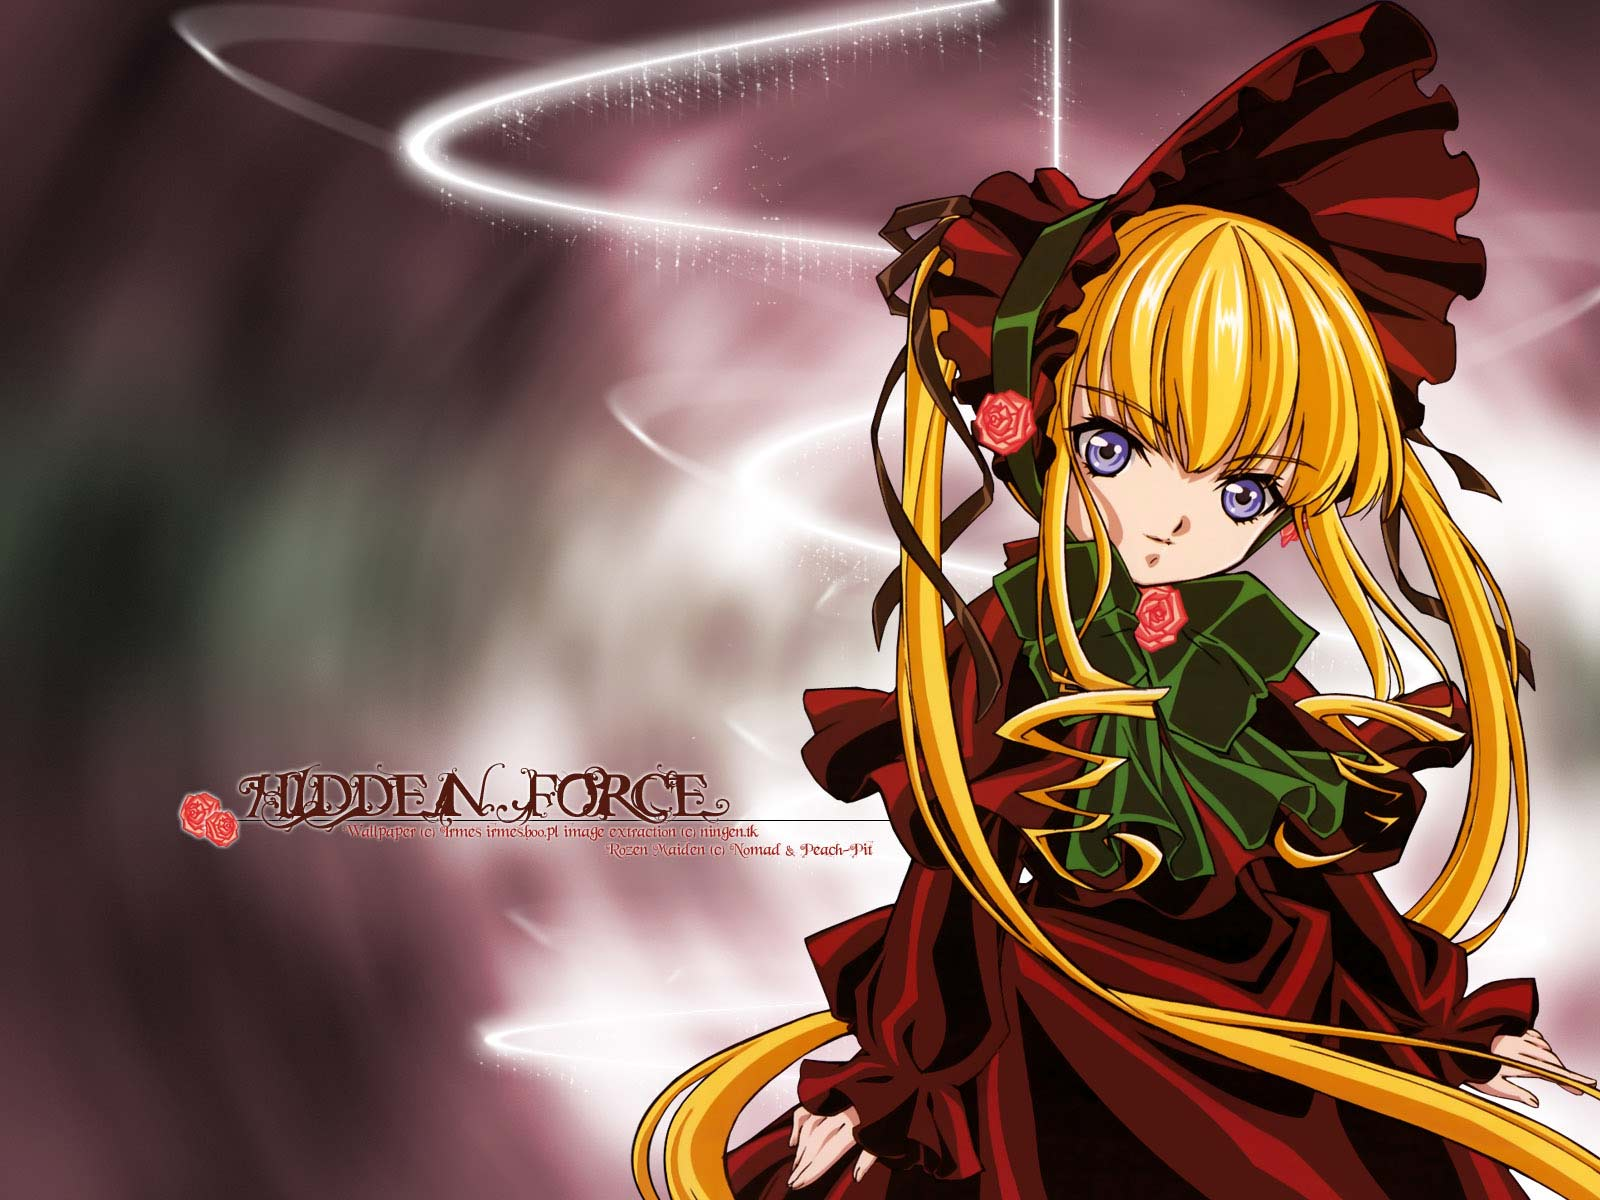 Rozen Maiden Anime Wallpapers